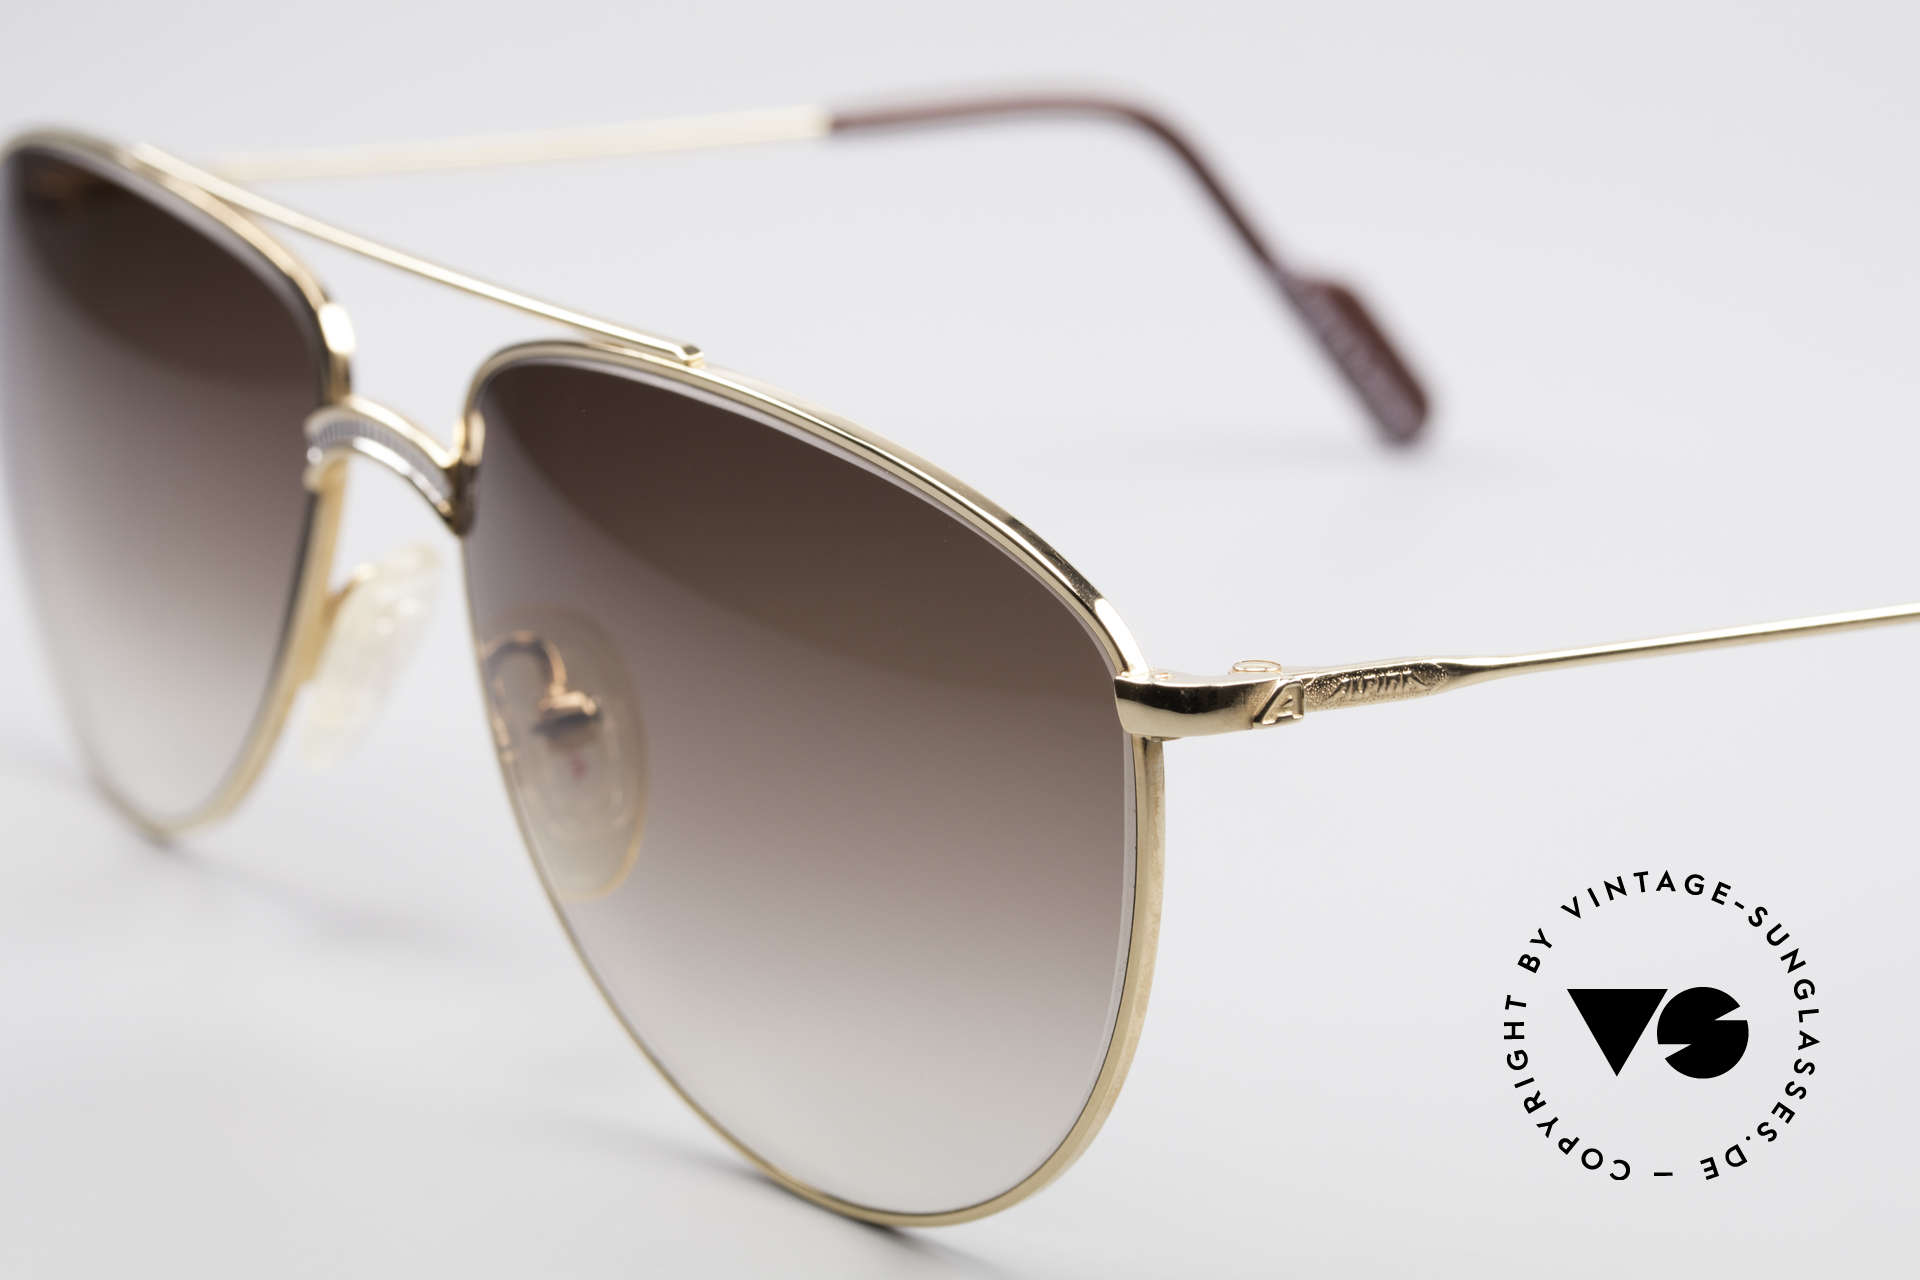 Alpina FM81 Vintage Classic 80's Shades, unworn, one of a kind (like all our vintage Alpina specs), Made for Men